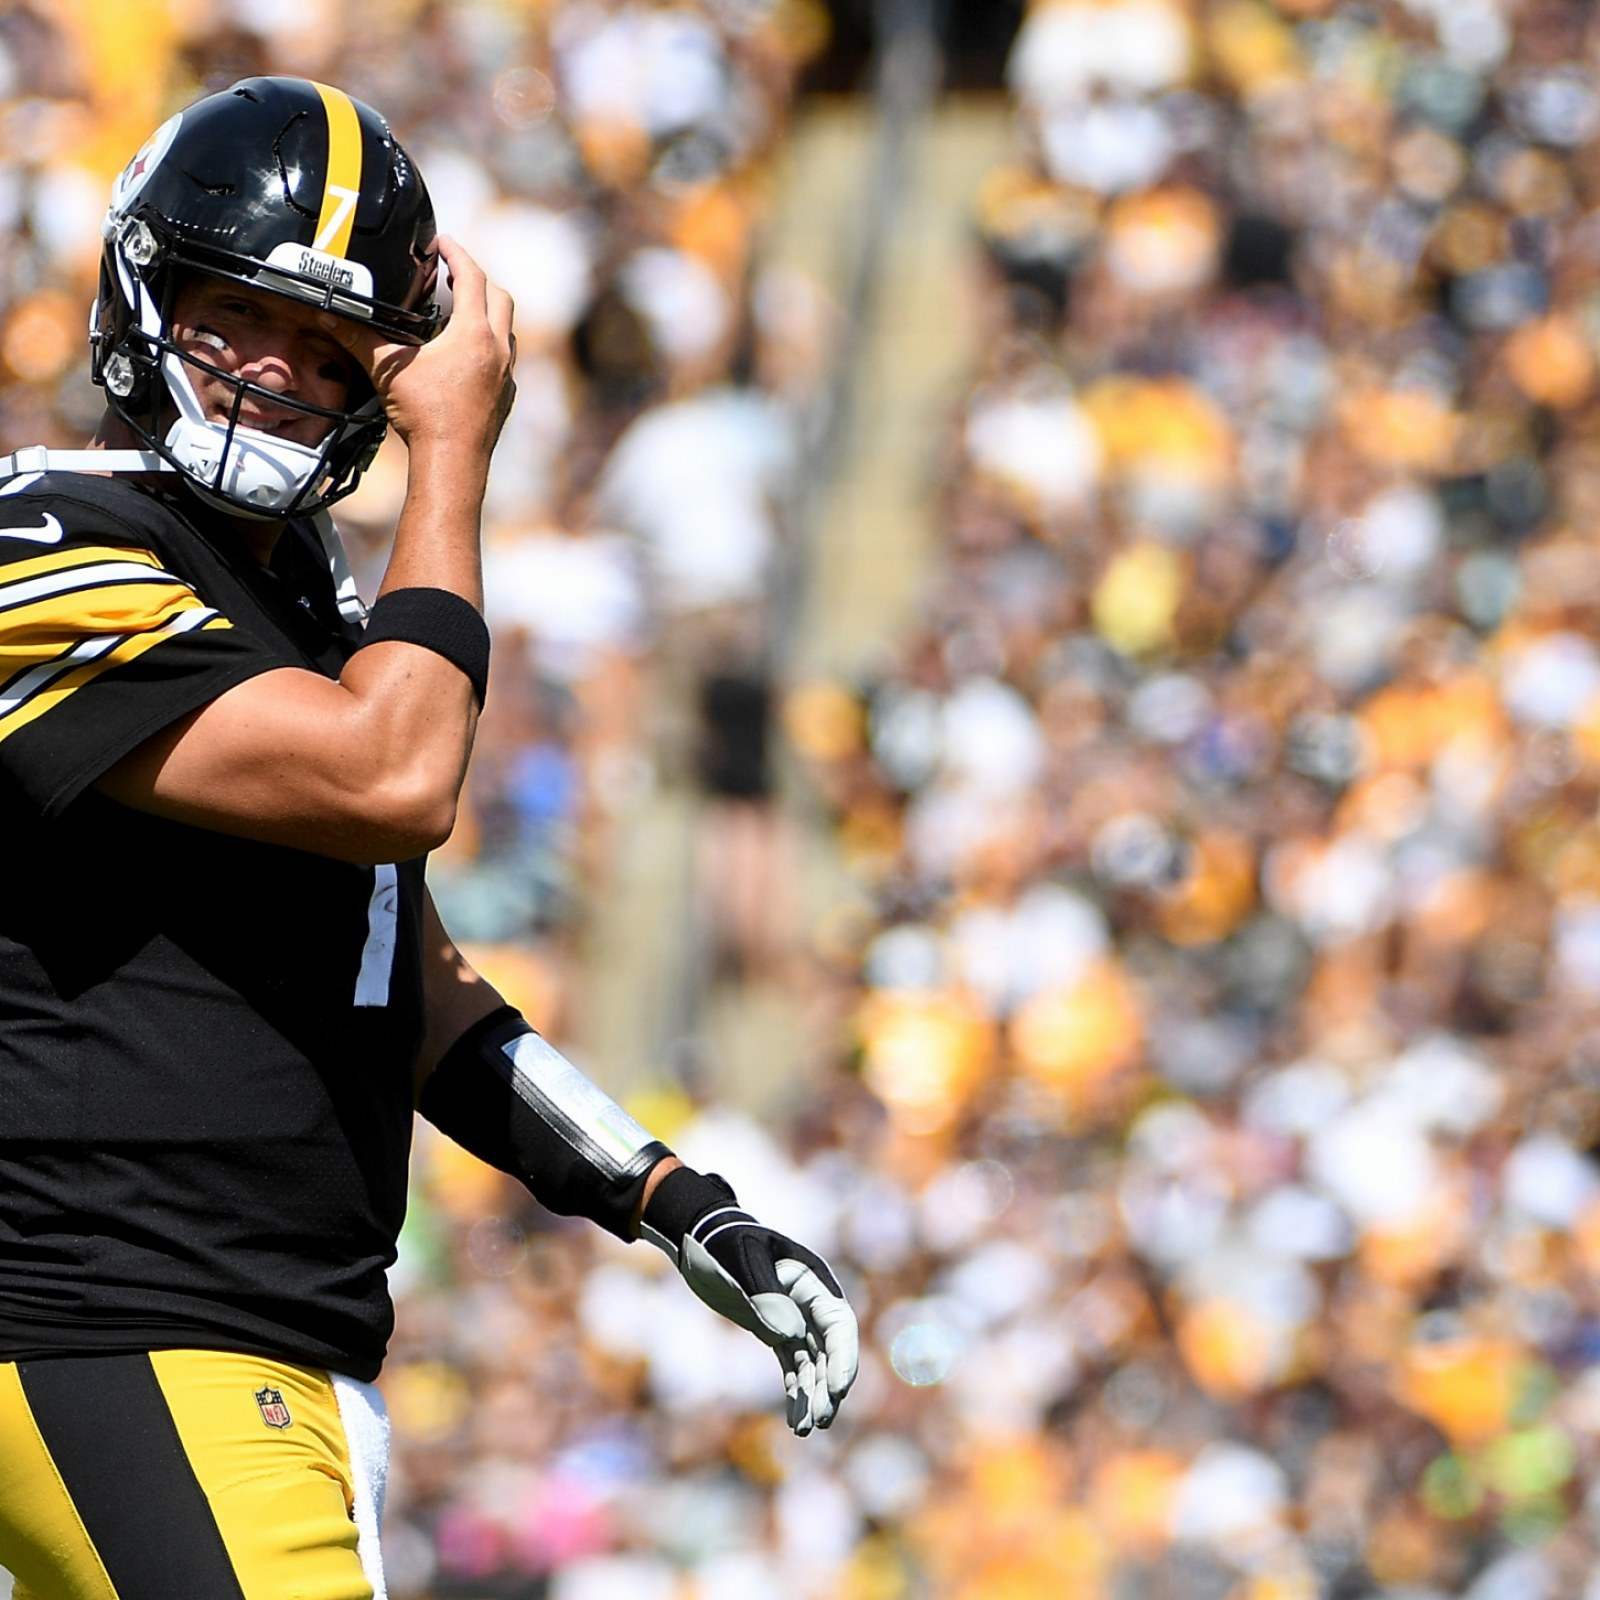 finest selection f90dc 51c3e Ben Roethlisberger Injury News: Will Pittsburgh Steelers ...